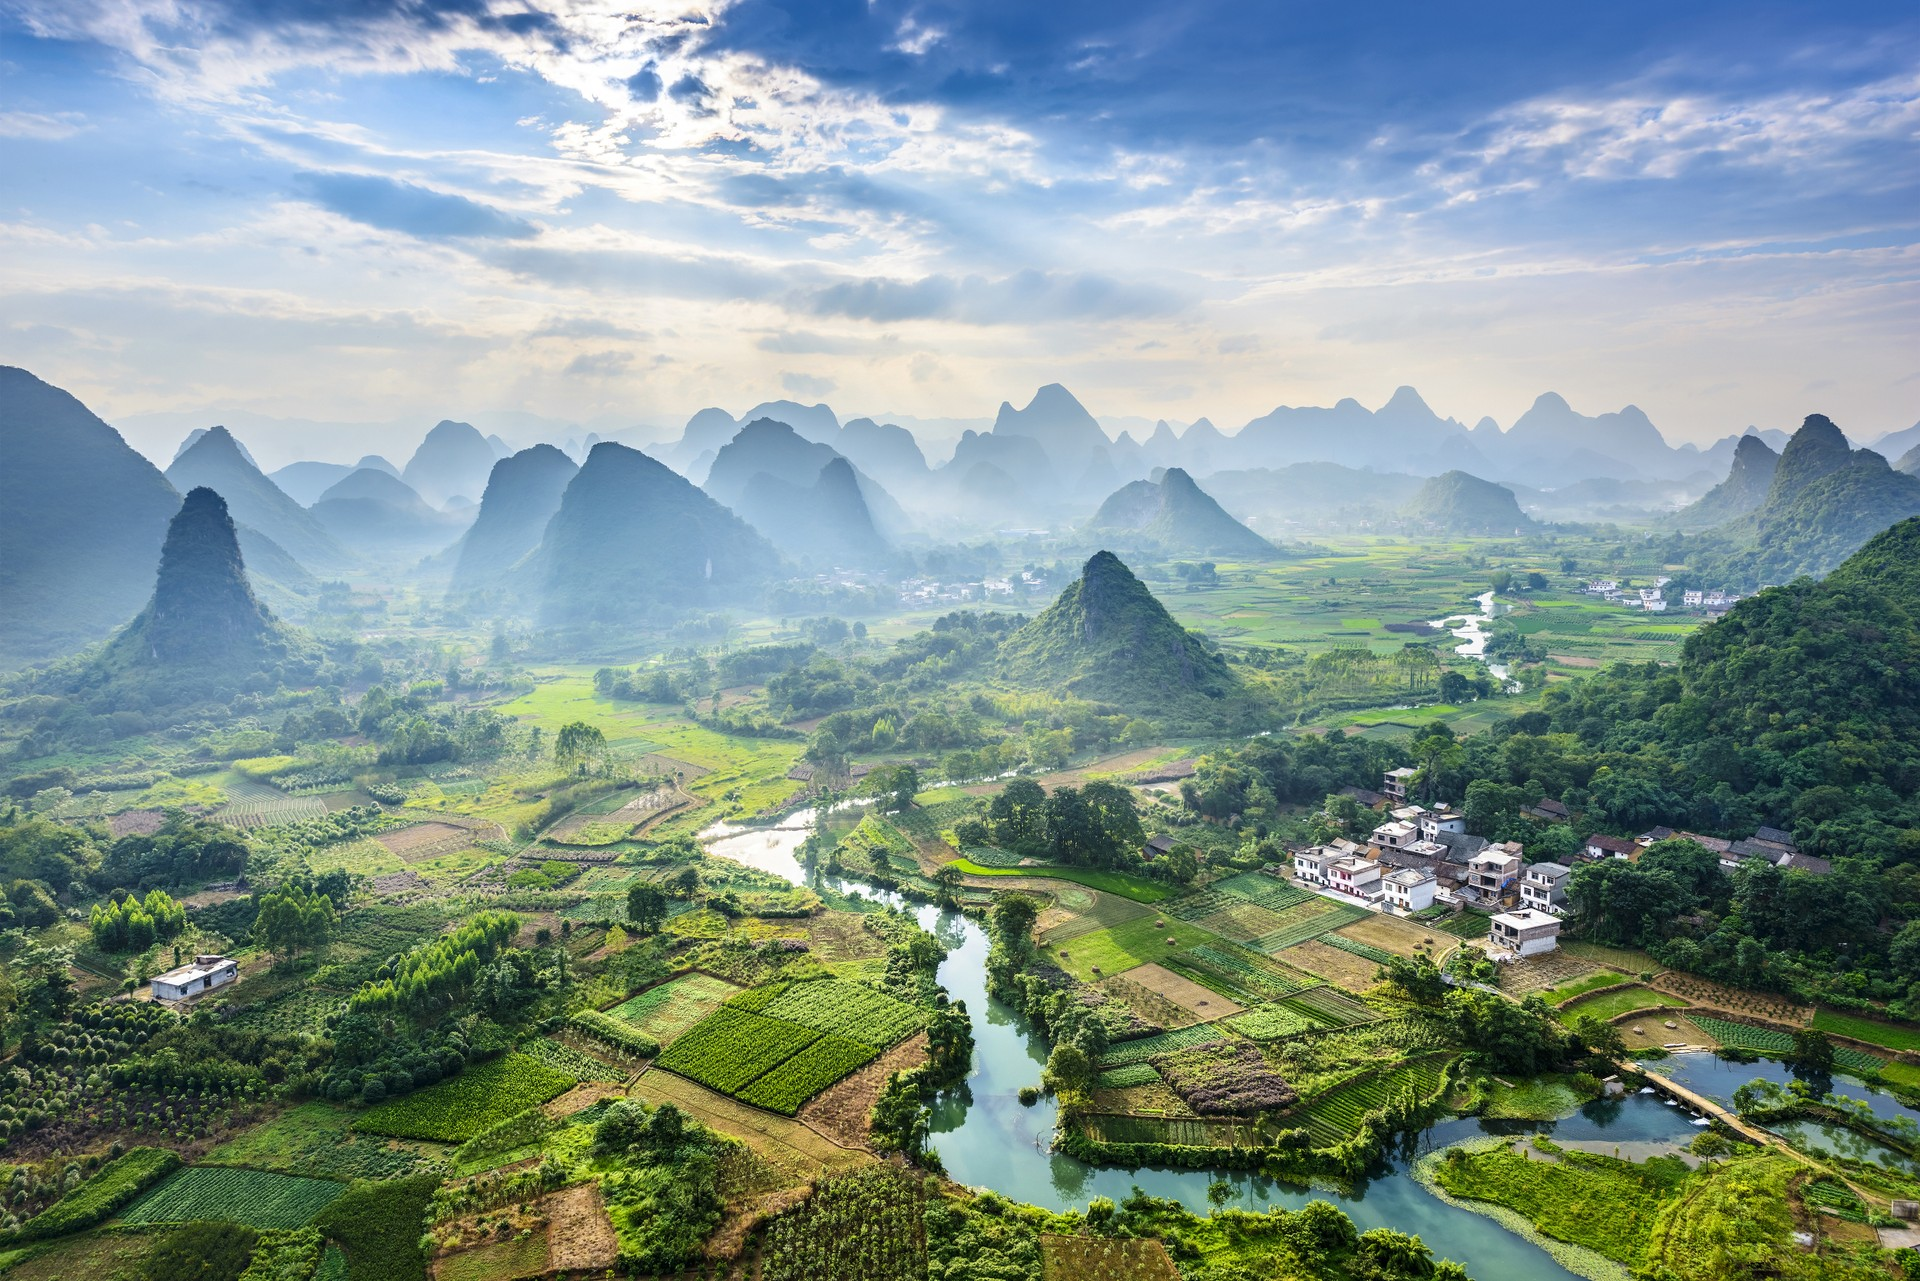 The landscapes of Guilin, China